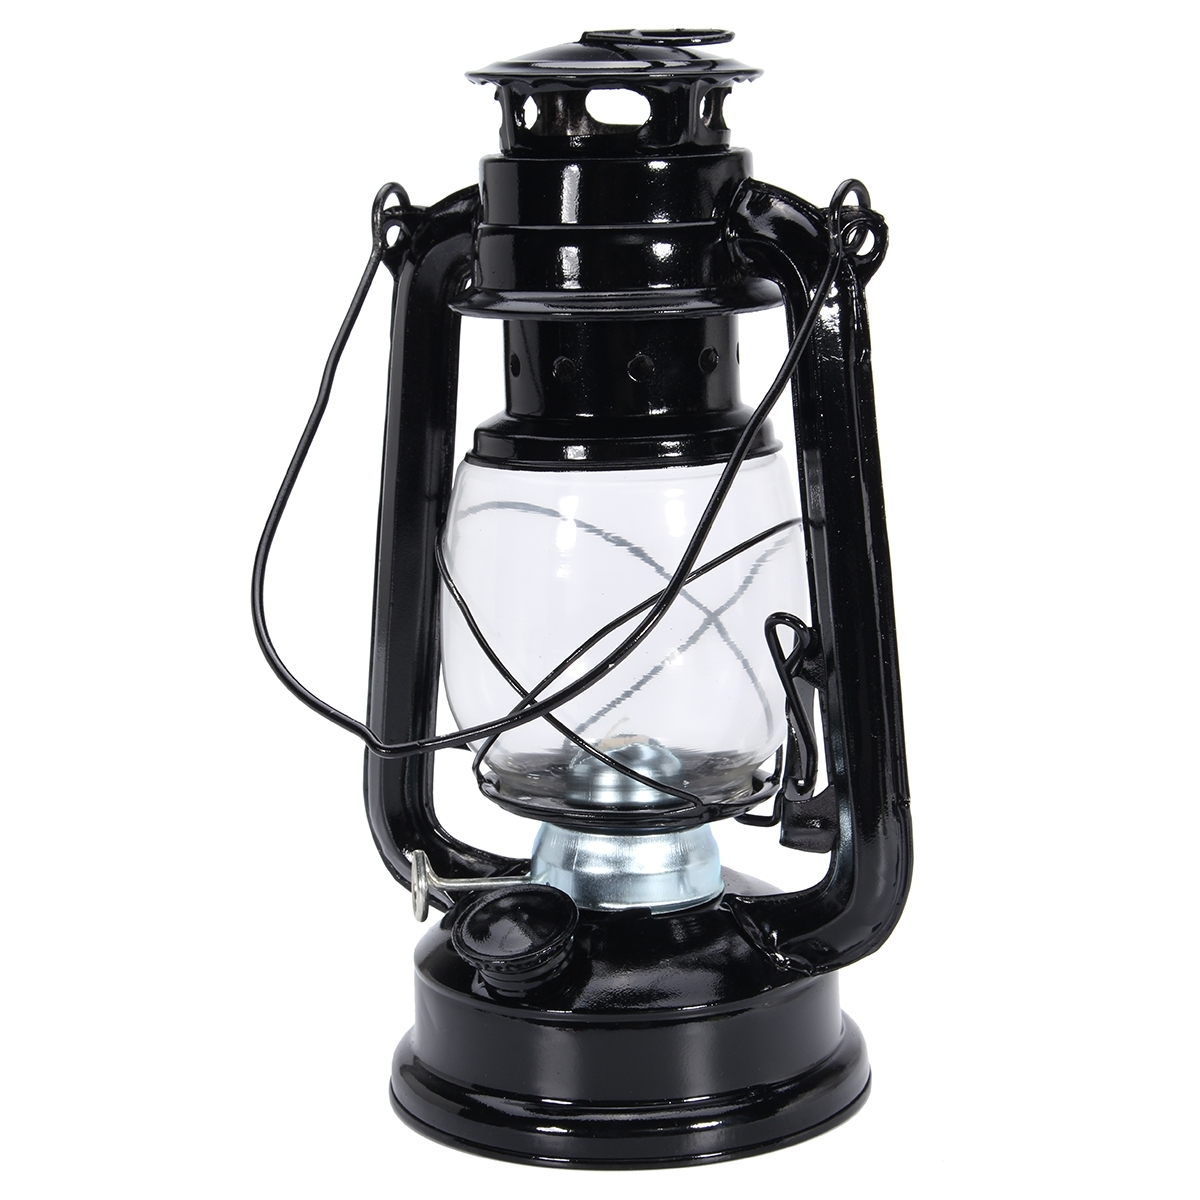 Hurricane Storm Lantern Kerosene Light Oil Camping Lamp Outdoor With Widely Used Outdoor Storm Lanterns (View 5 of 20)